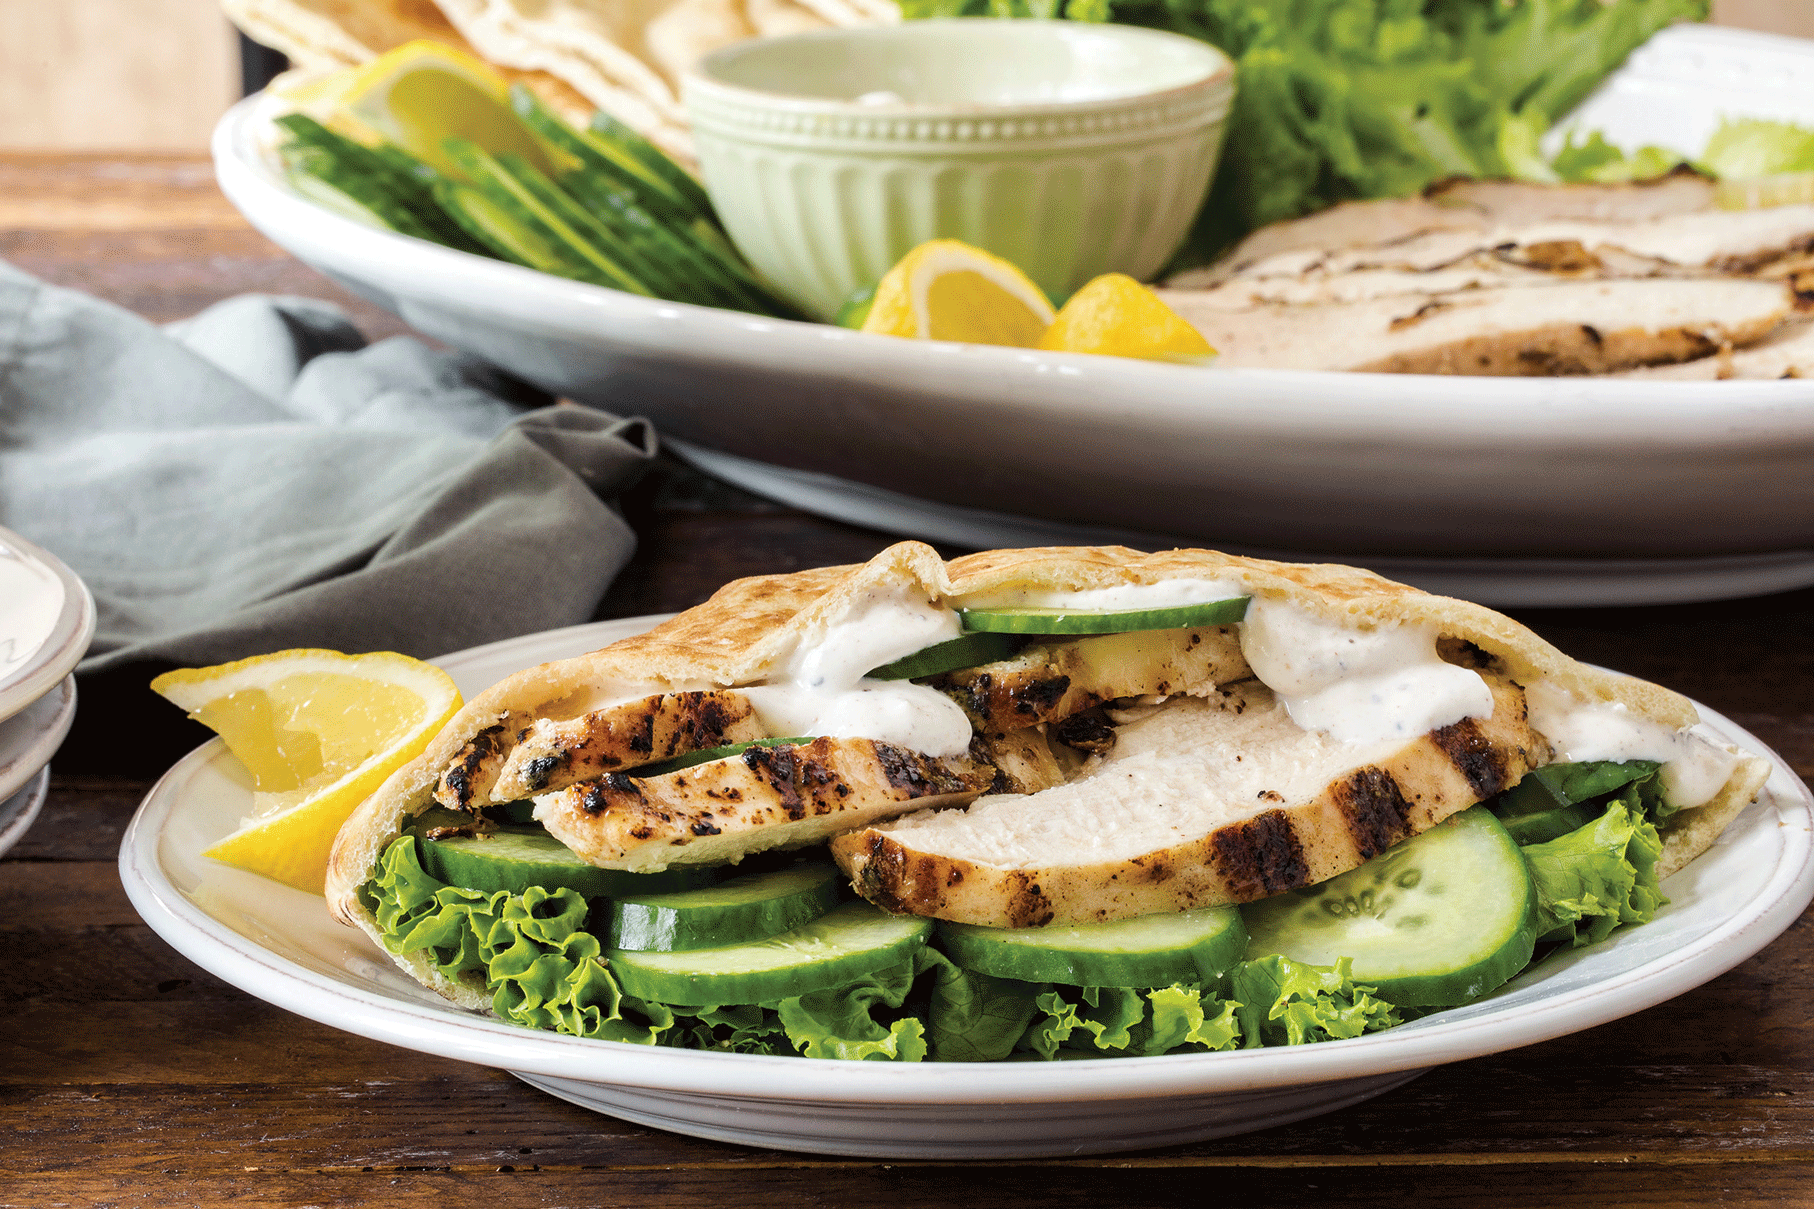 Trendy Tastes: Recipe for Grilled Chicken Shawarma